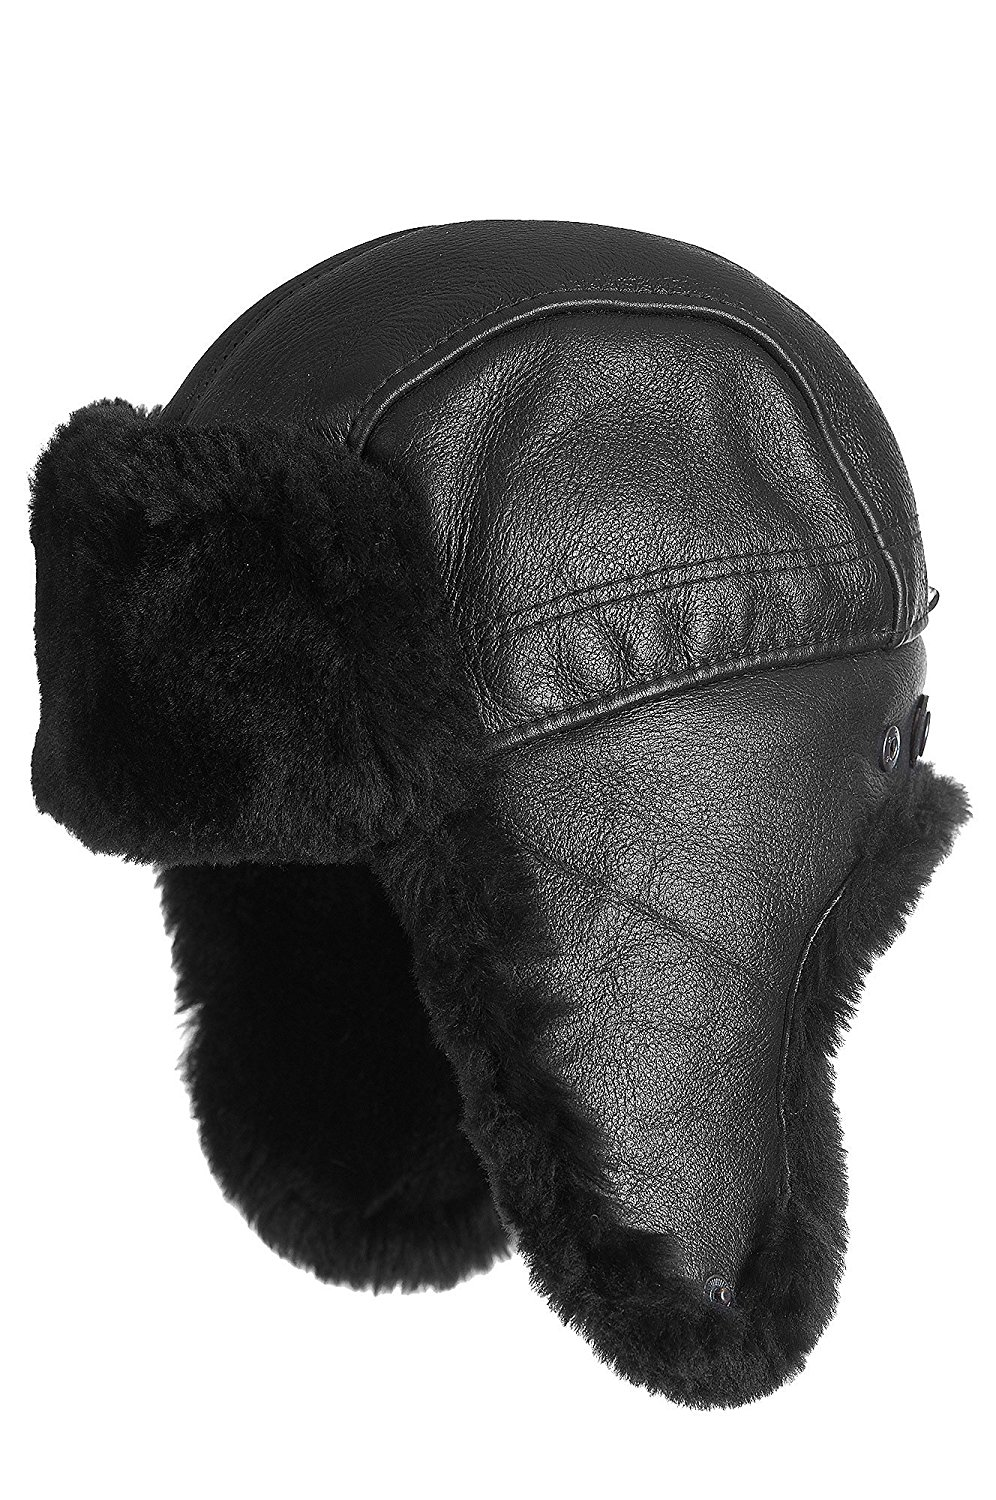 c554c48d413 Zavelio Mens Shearling Sheepskin Aviator Russian Ushanka with Snap Hat  CIT-03-XL-Brown